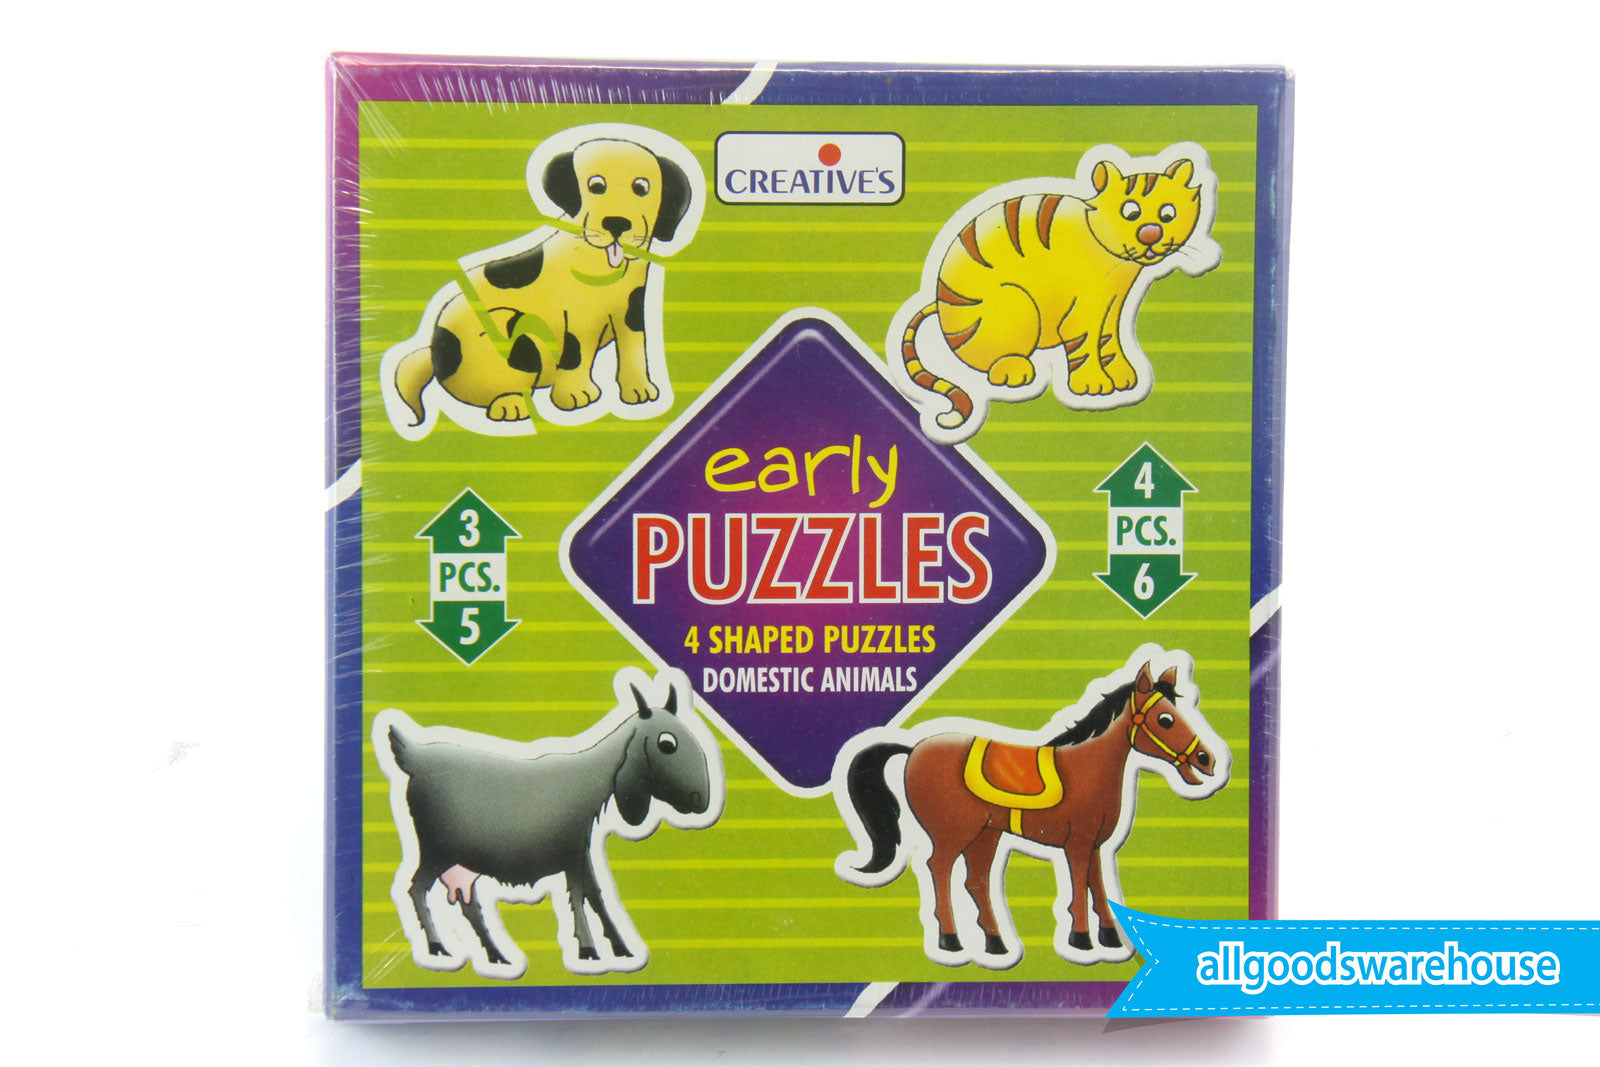 Creative's Early Puzzles - Domestic Animals